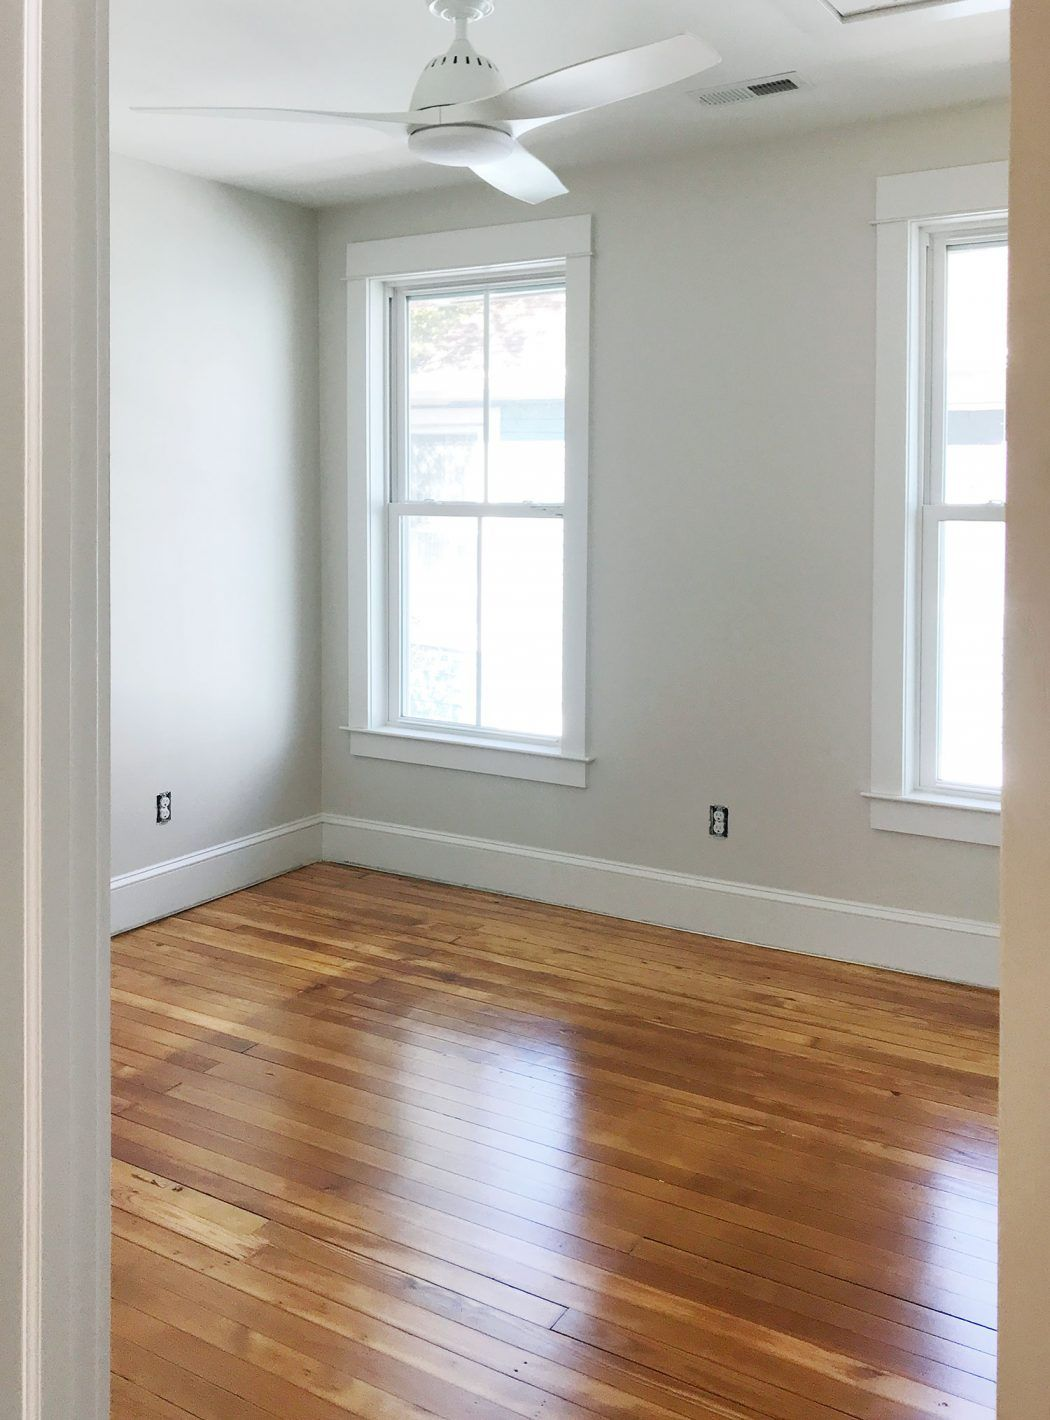 The Pine Floors At The Beach House Are Refinished And It Changes Everything Pine Floors White Wood Floors